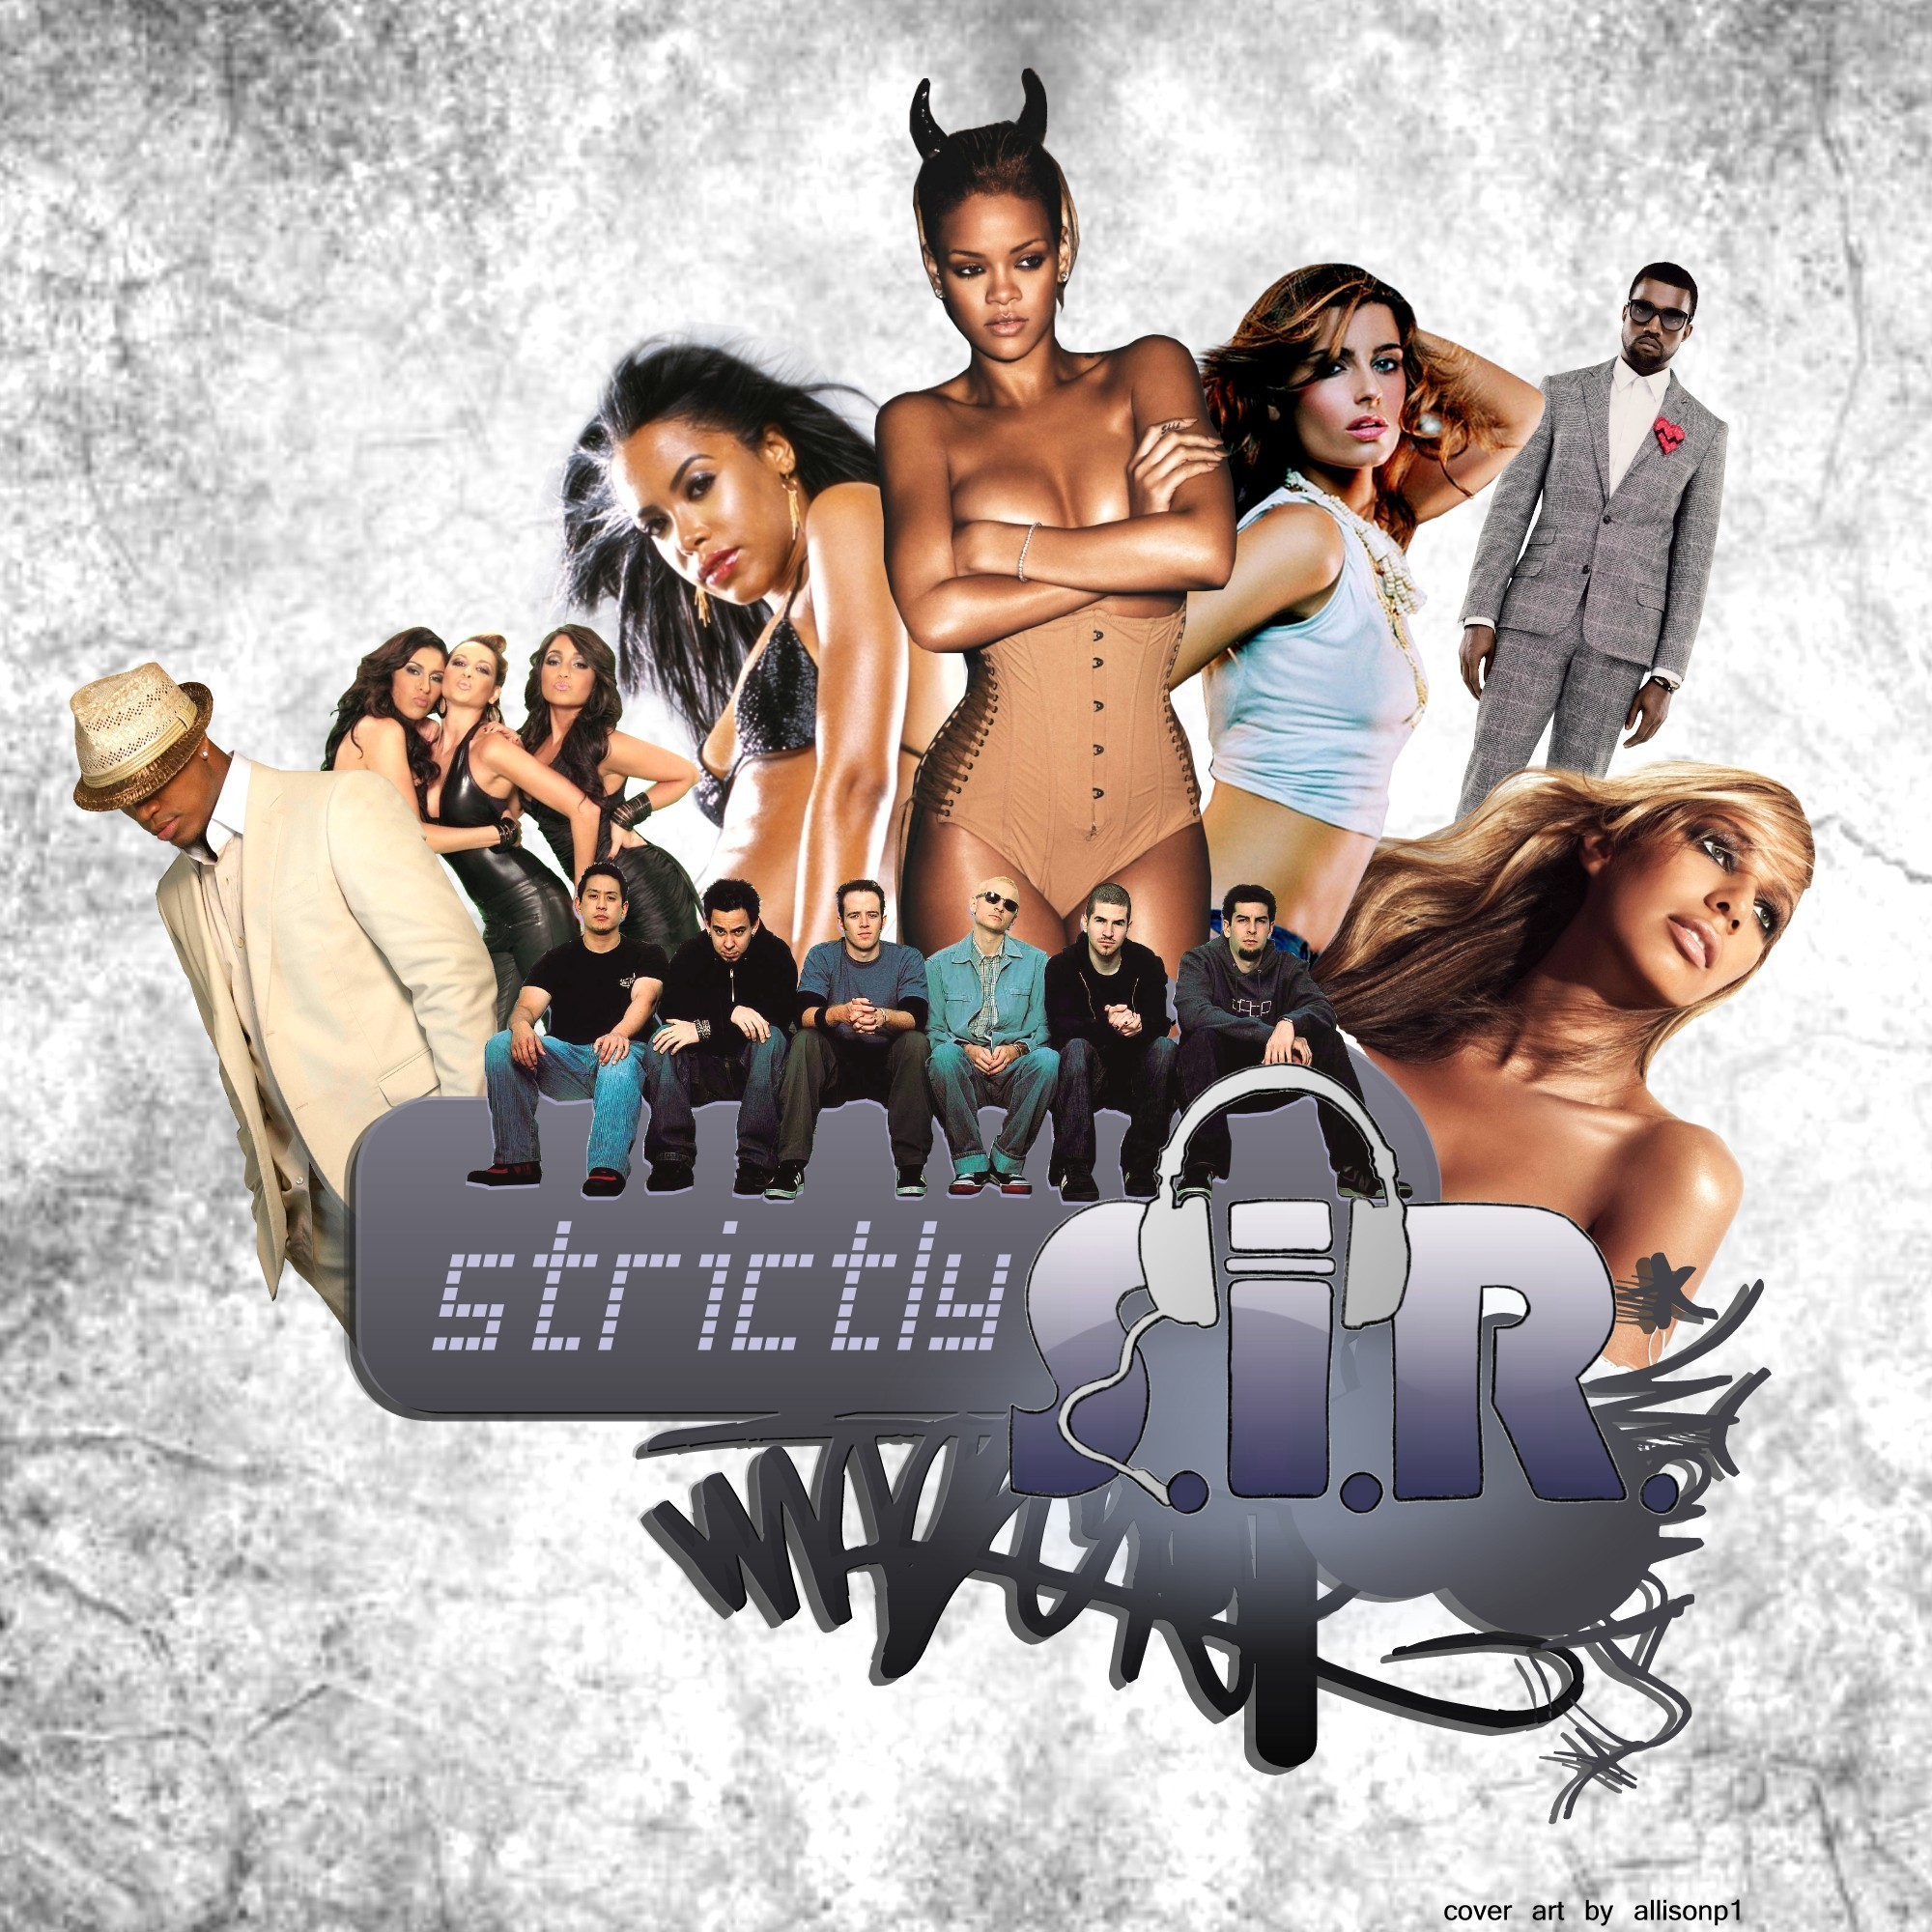 03 - Nelly Furtado ft. Aaliyah & Missy Elliott - Do it (If your girl only knew ...) (S.I.R. Remix)